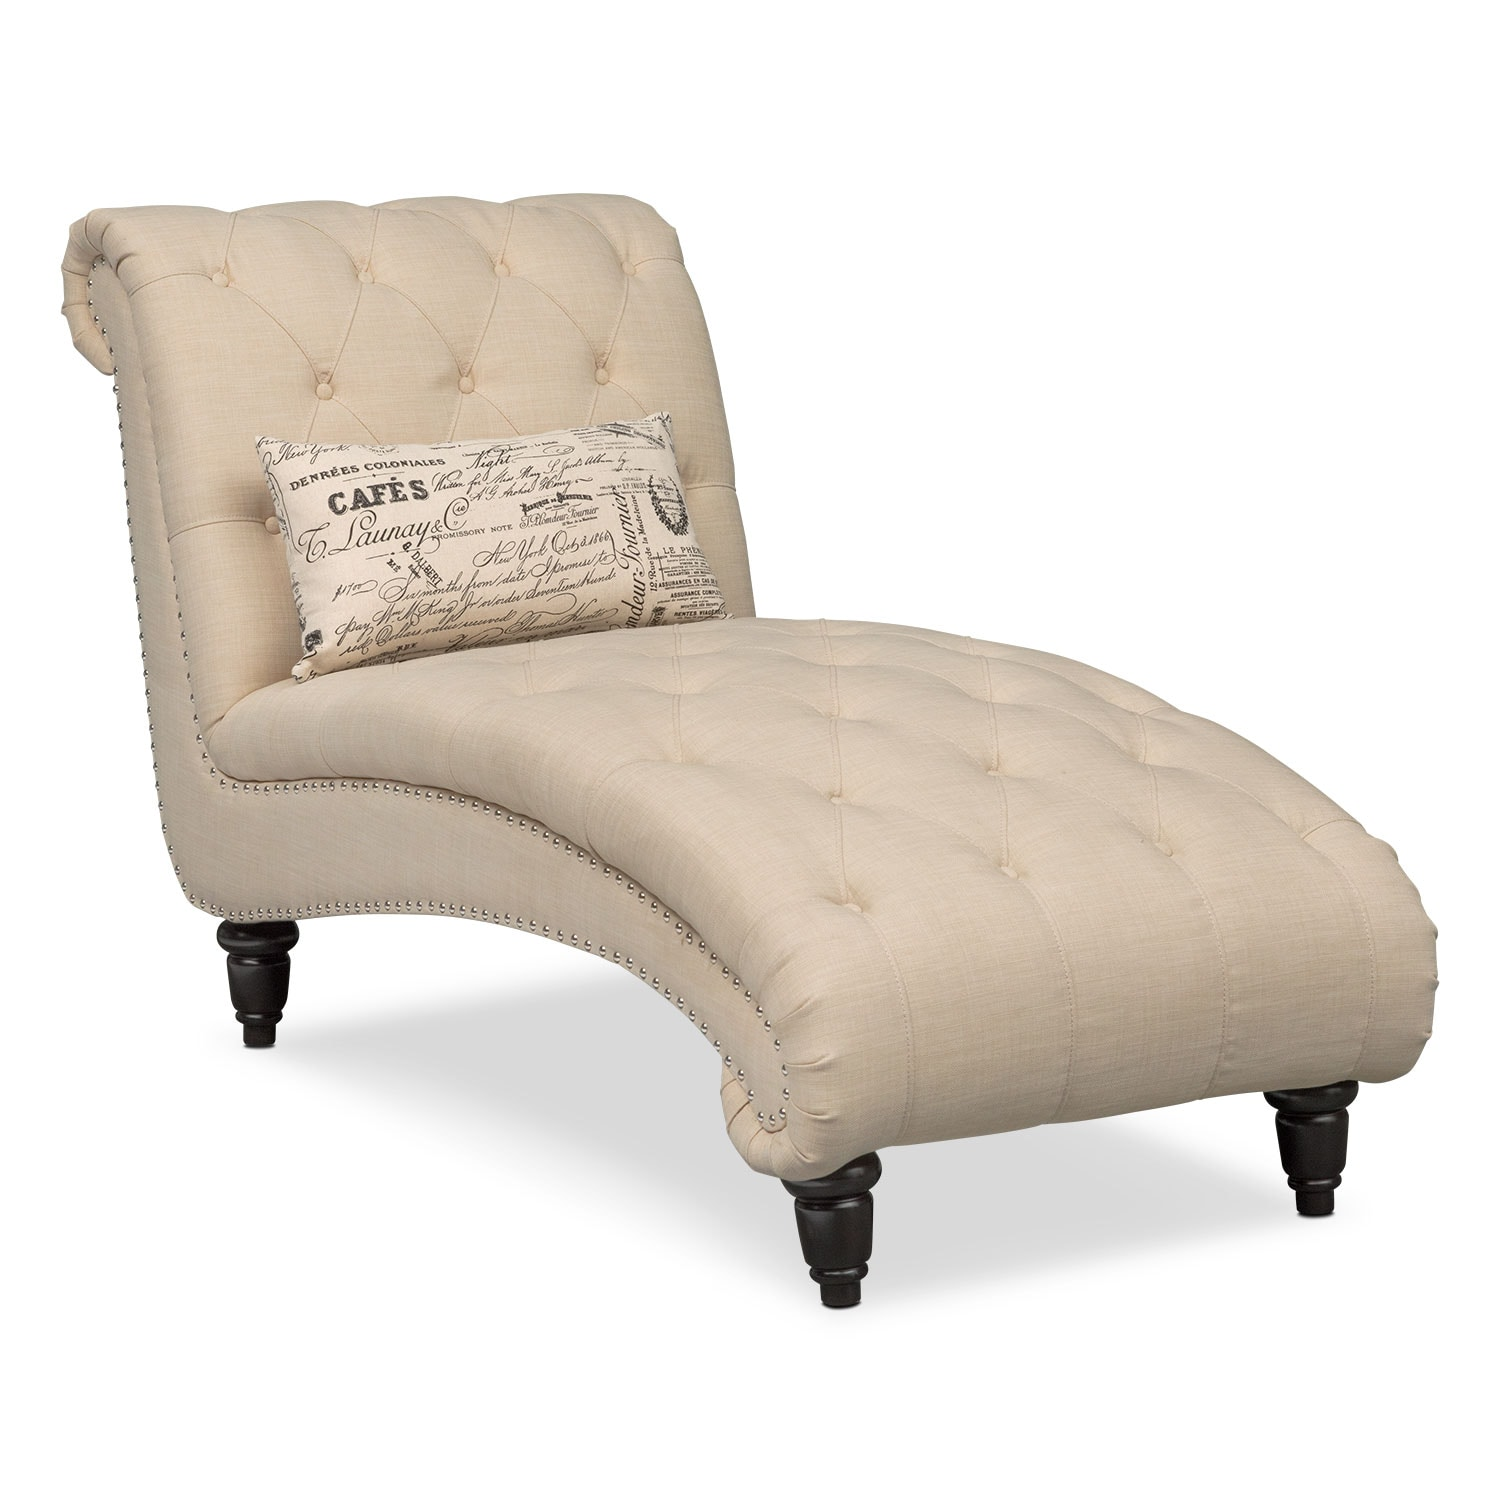 Living Room Furniture - Marisol Chaise - Beige